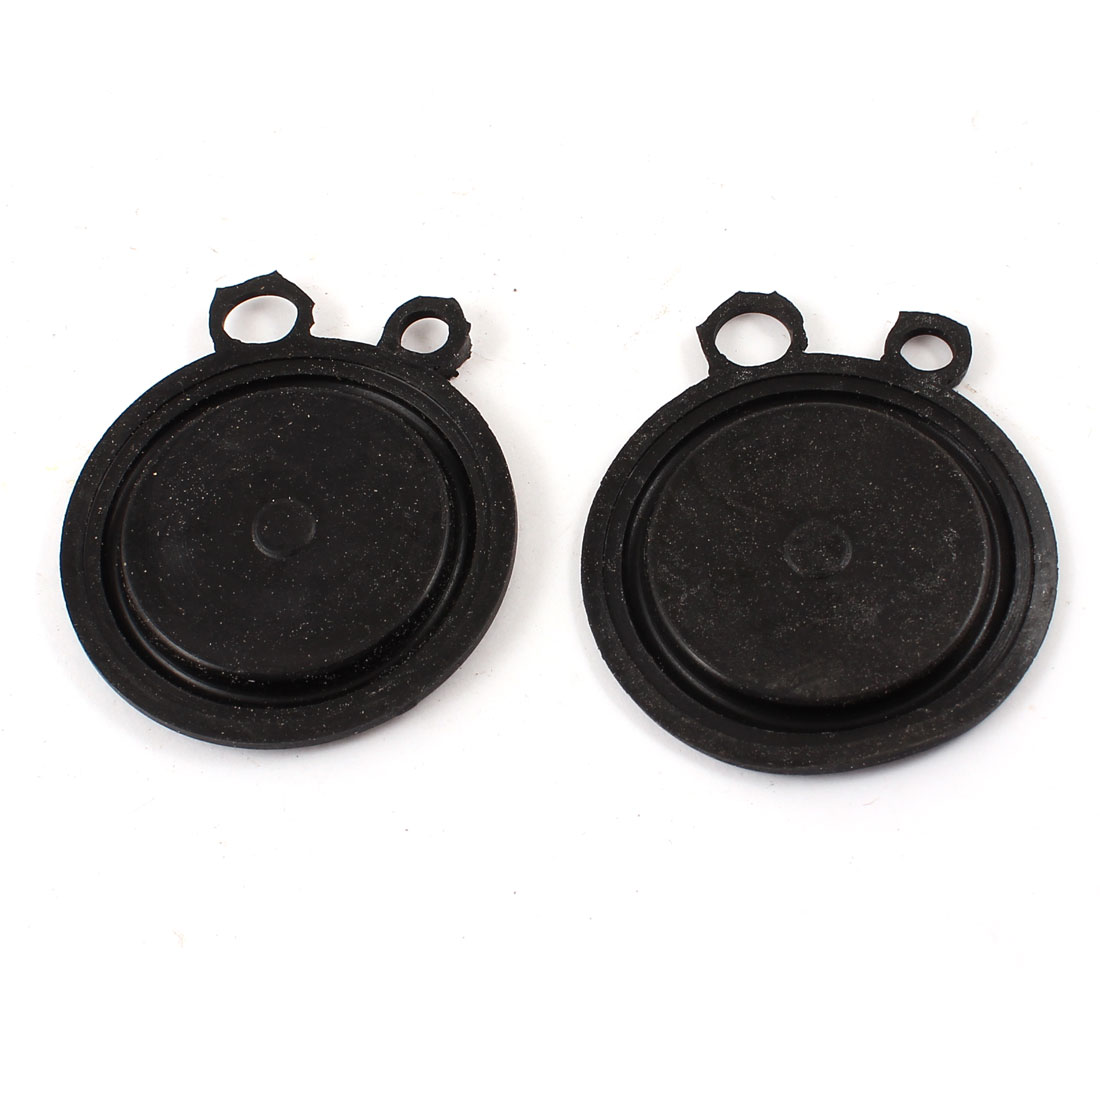 "2 Pcs 55mm 2.2"" Diameter Water Heater Diaphragms Seal Valve Gasket"